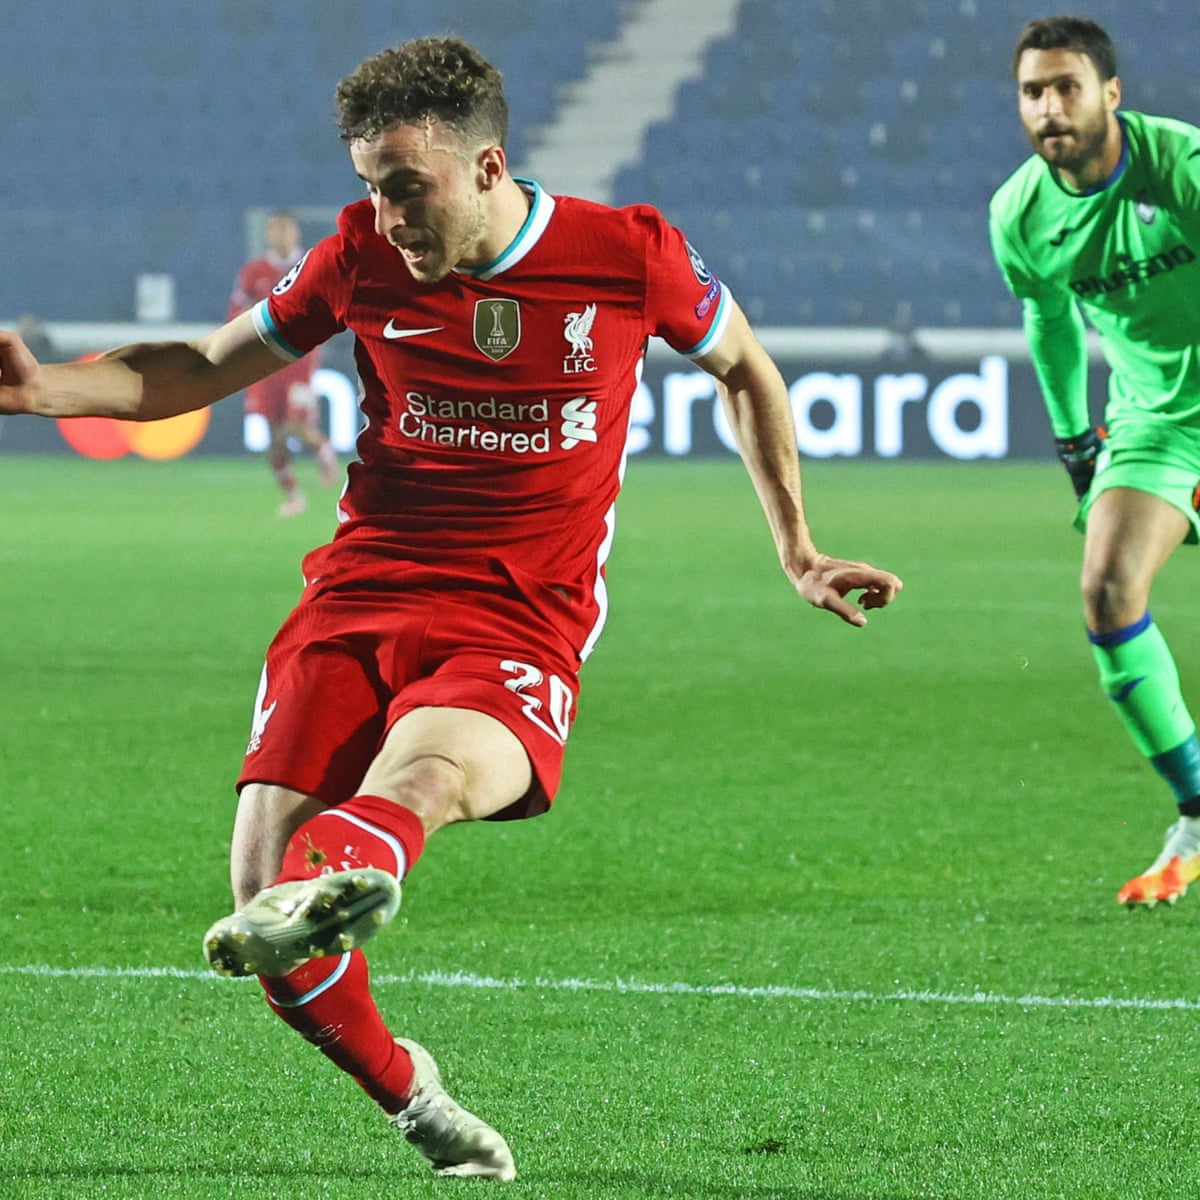 diogo jota hits superb hat trick for liverpool in demolition of atalanta football the guardian diogo jota hits superb hat trick for